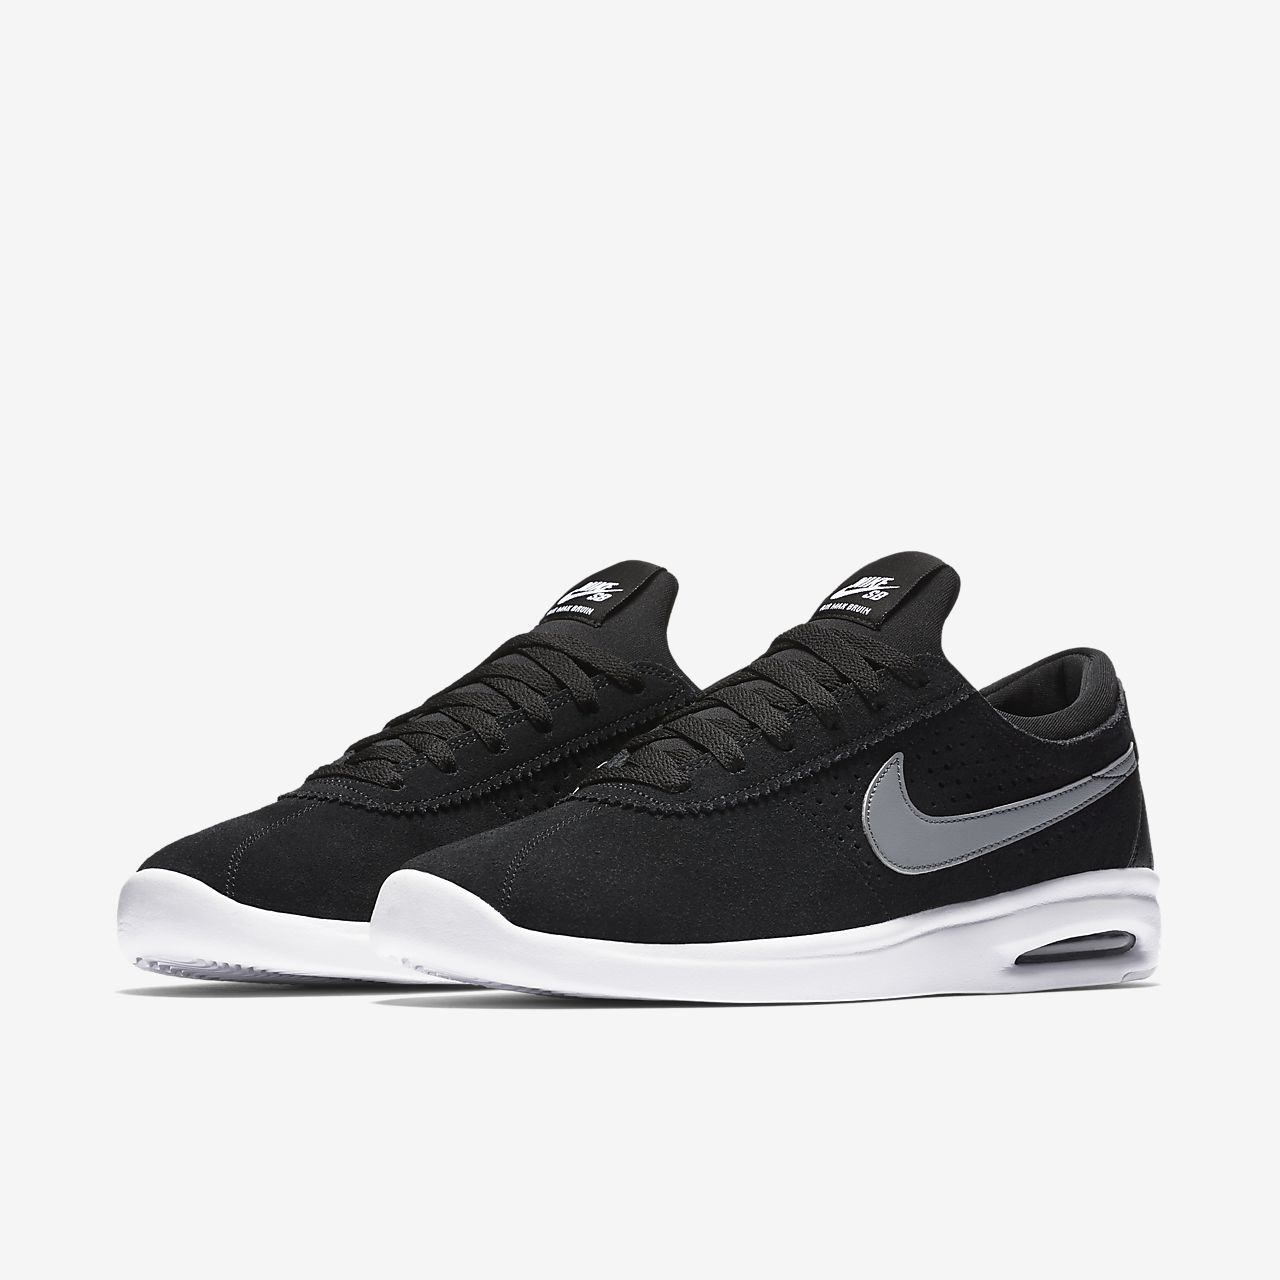 low priced 1794b 2de57 ... Chaussure de skateboard Nike SB Air Max Bruin Vapor pour Homme